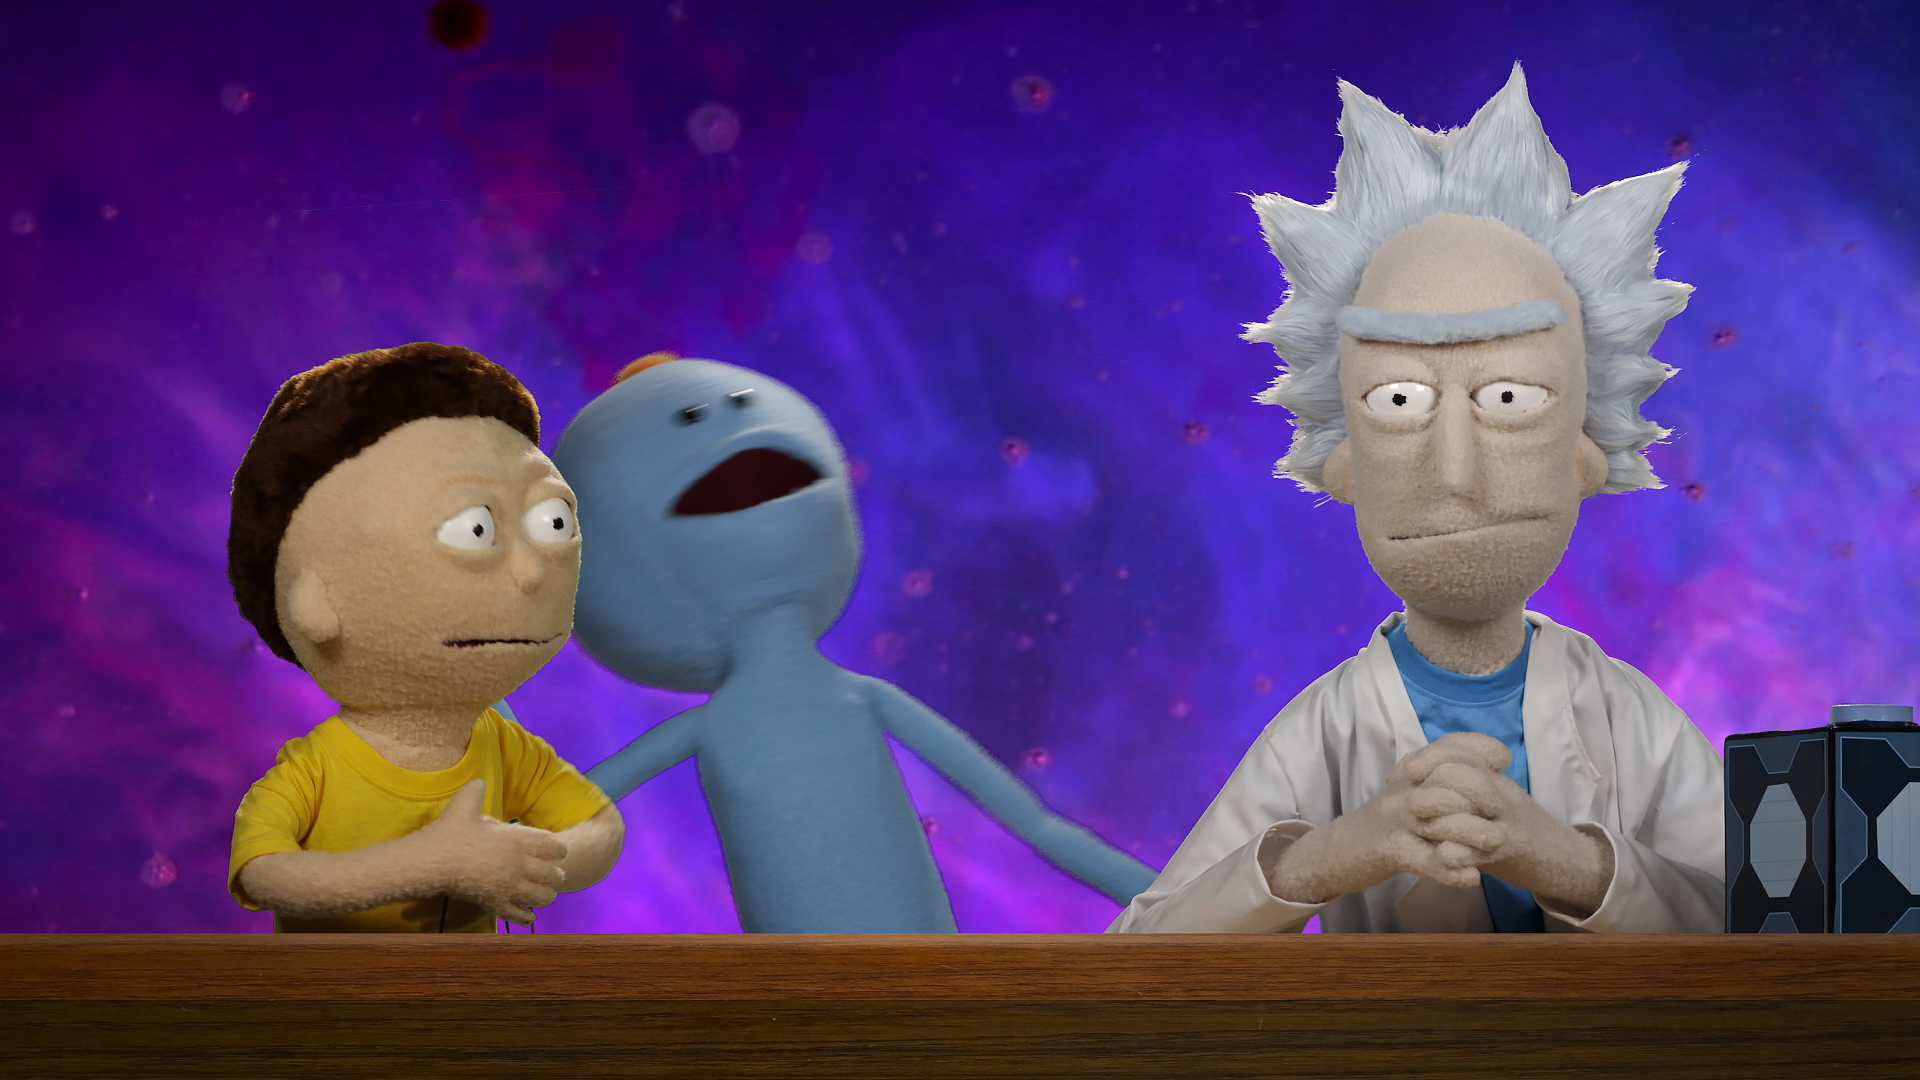 Rick, Morty and Meseeks puppets from the Rick and Morty Blu-ray commercial shot and edited by Todd Bishop